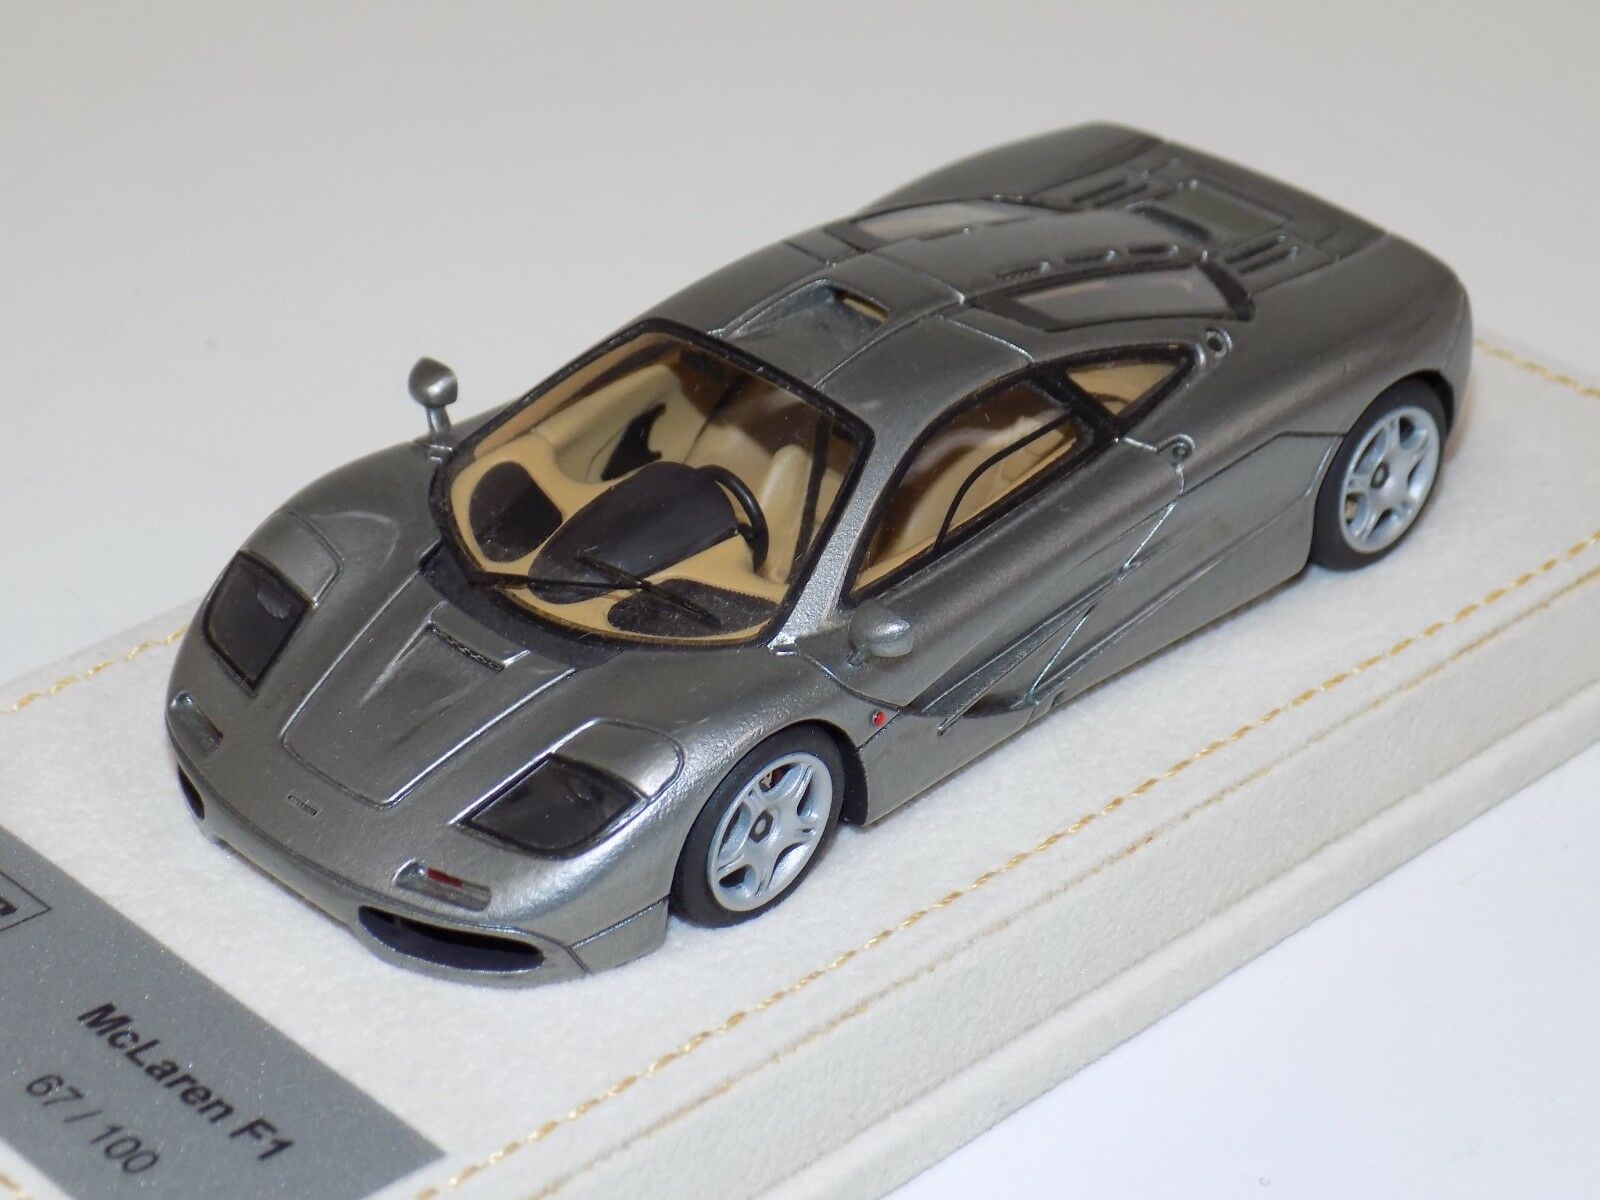 1 43 AB Modells McLaren F1 Roadcar in Titanium AM025AL